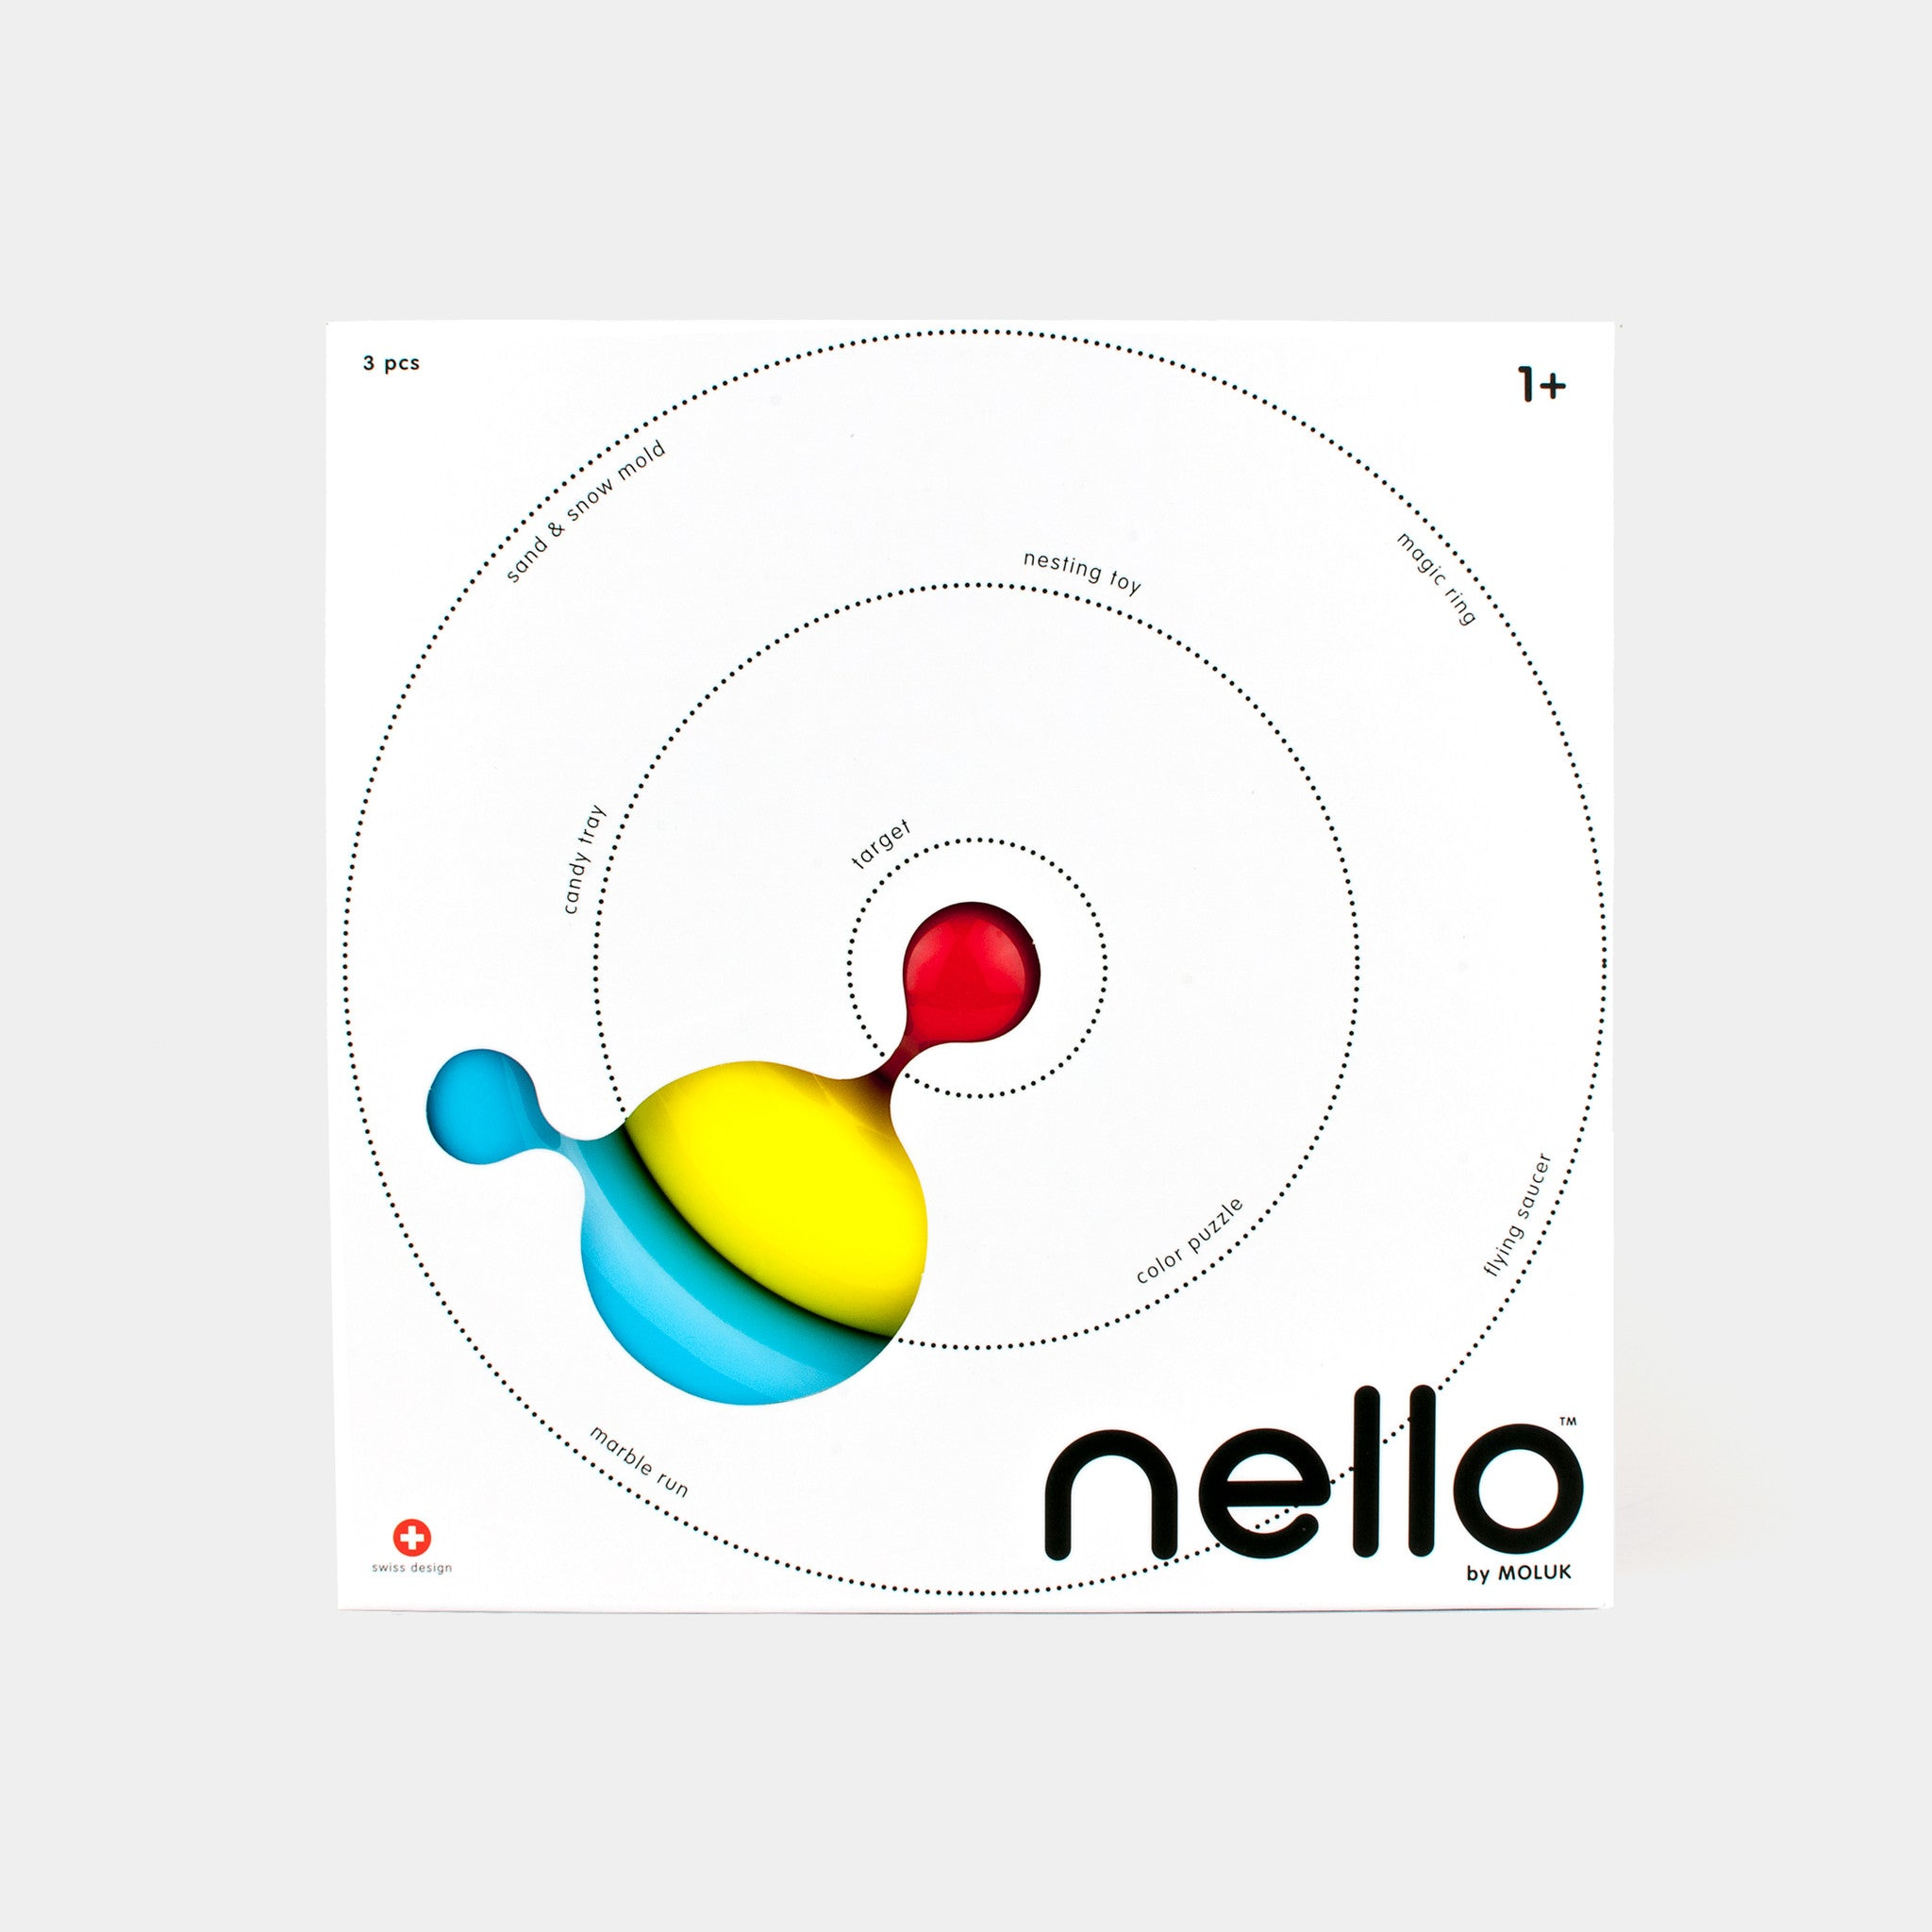 Nello is a magic object and versatile, open-ended toy that quickly becomes an indispensable accessory for countless play activities, indoors and outdoors.